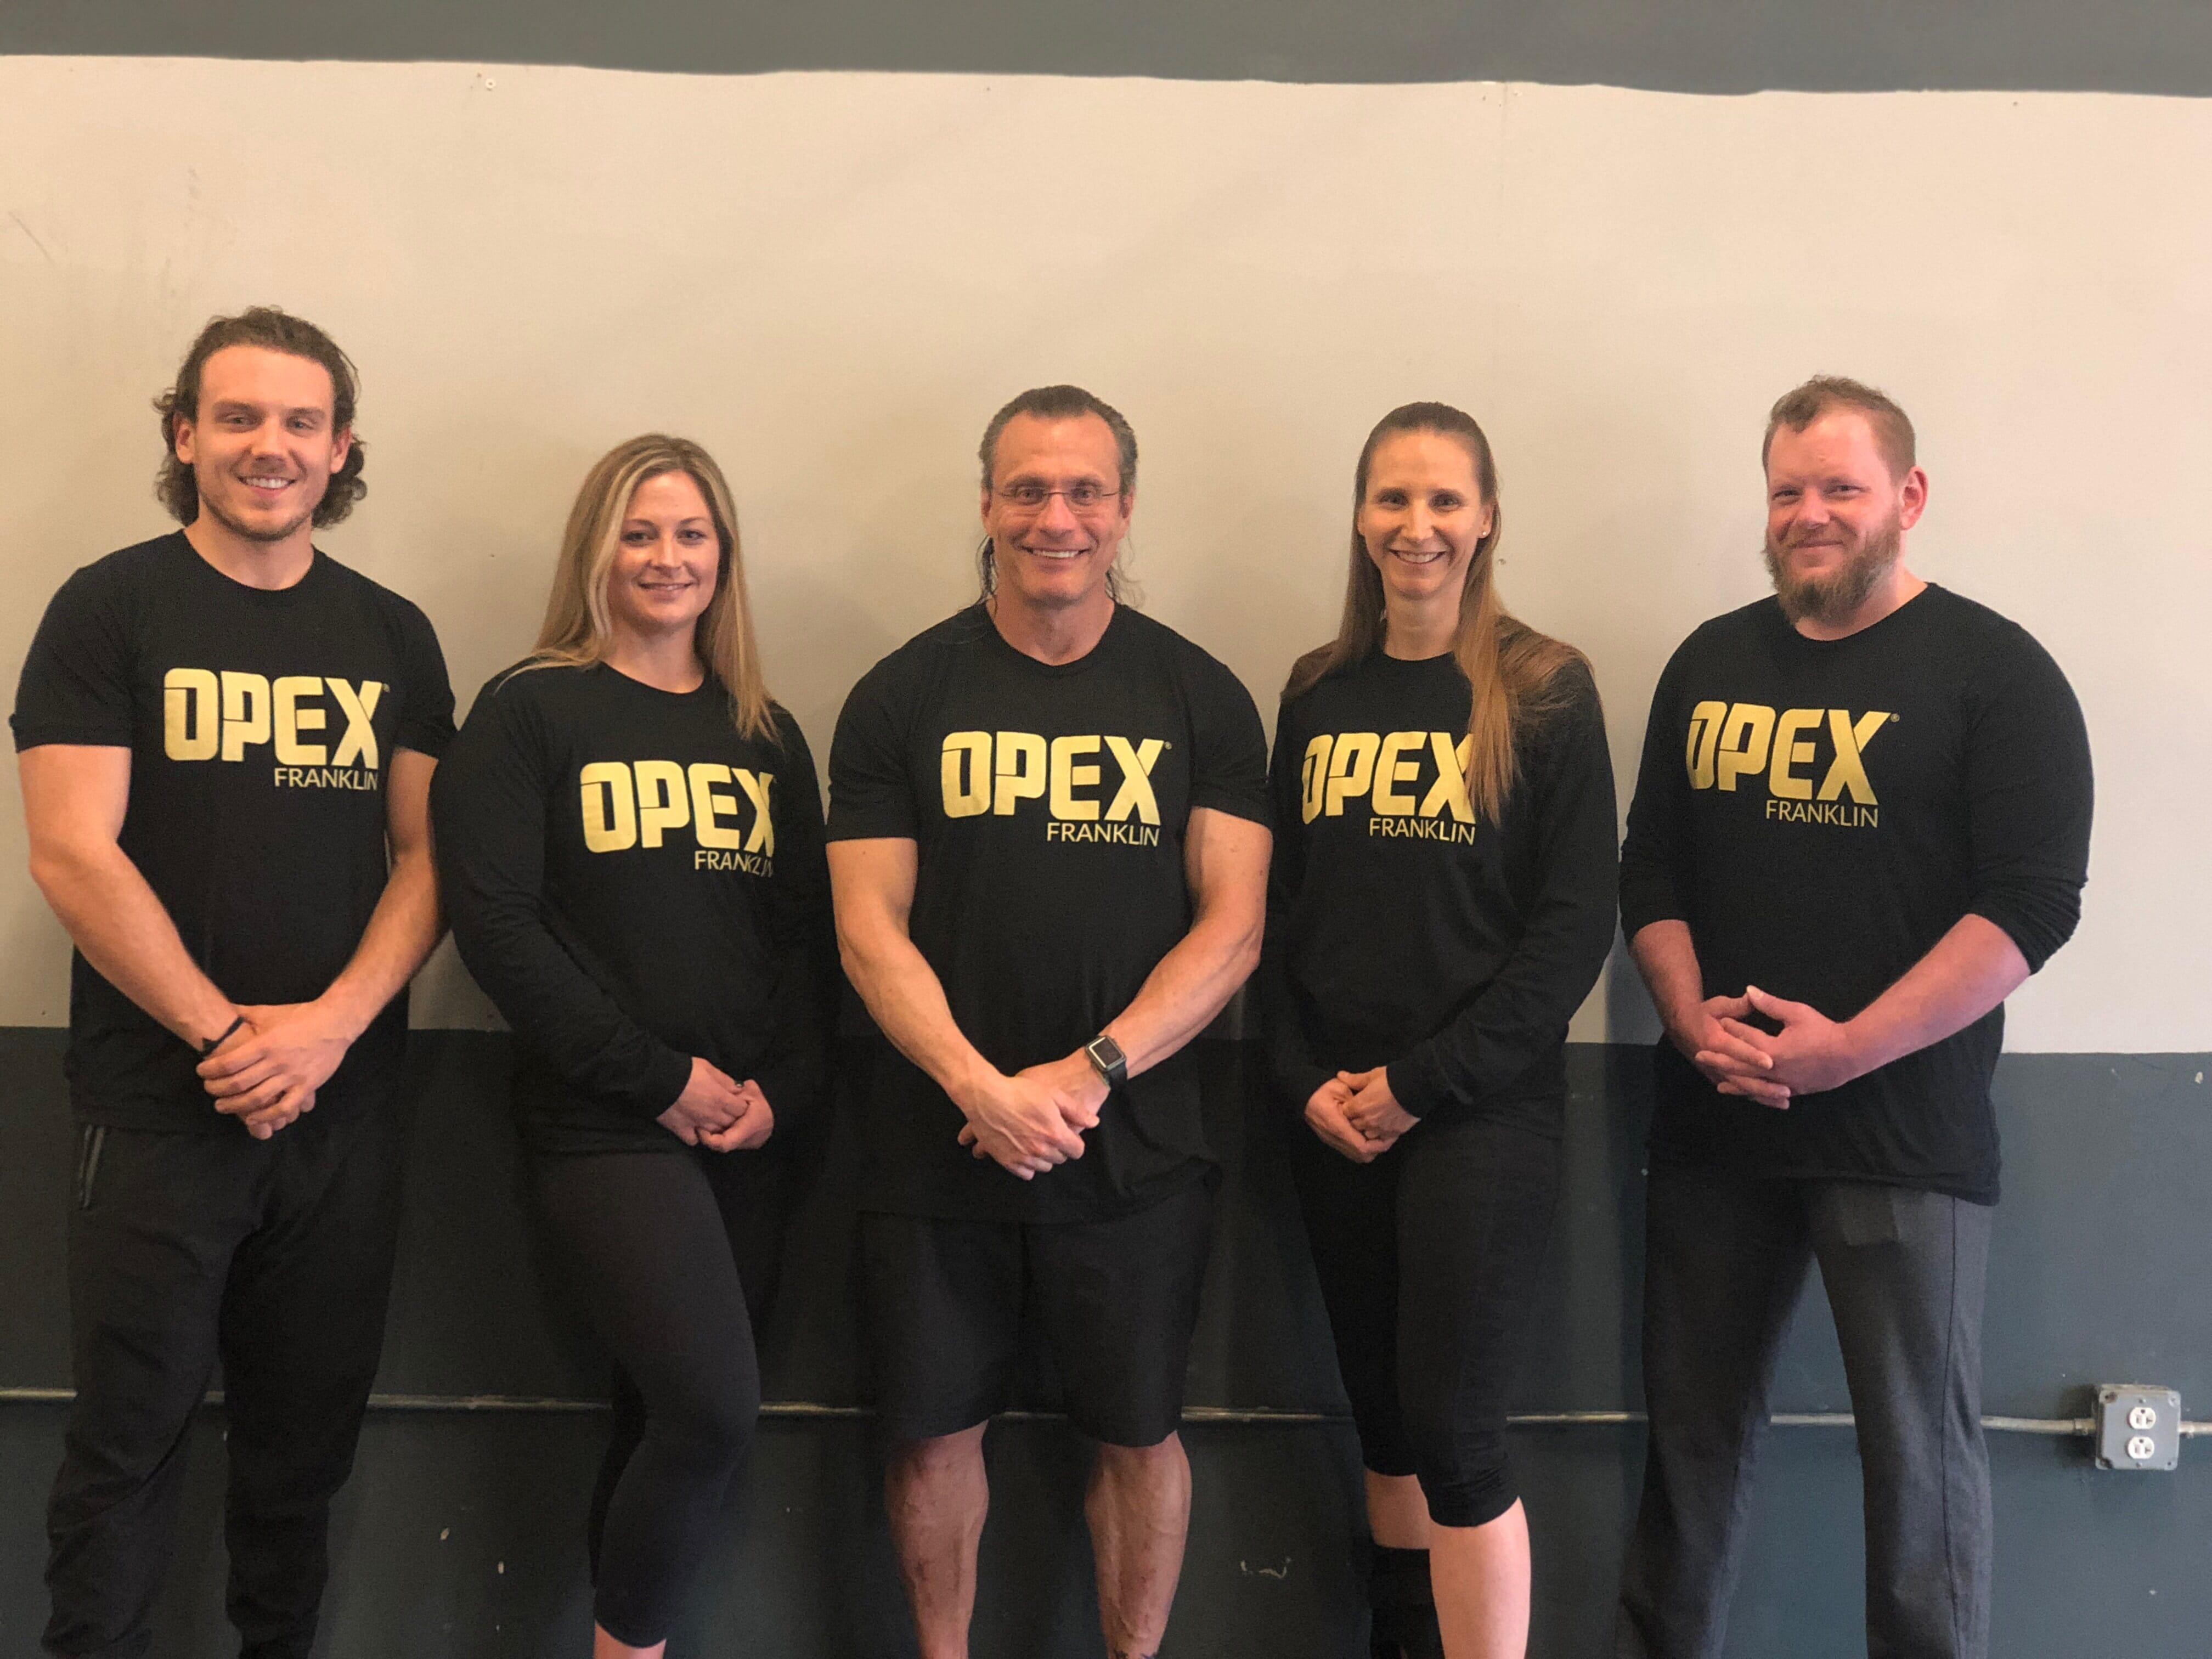 OPEX Franklin Team